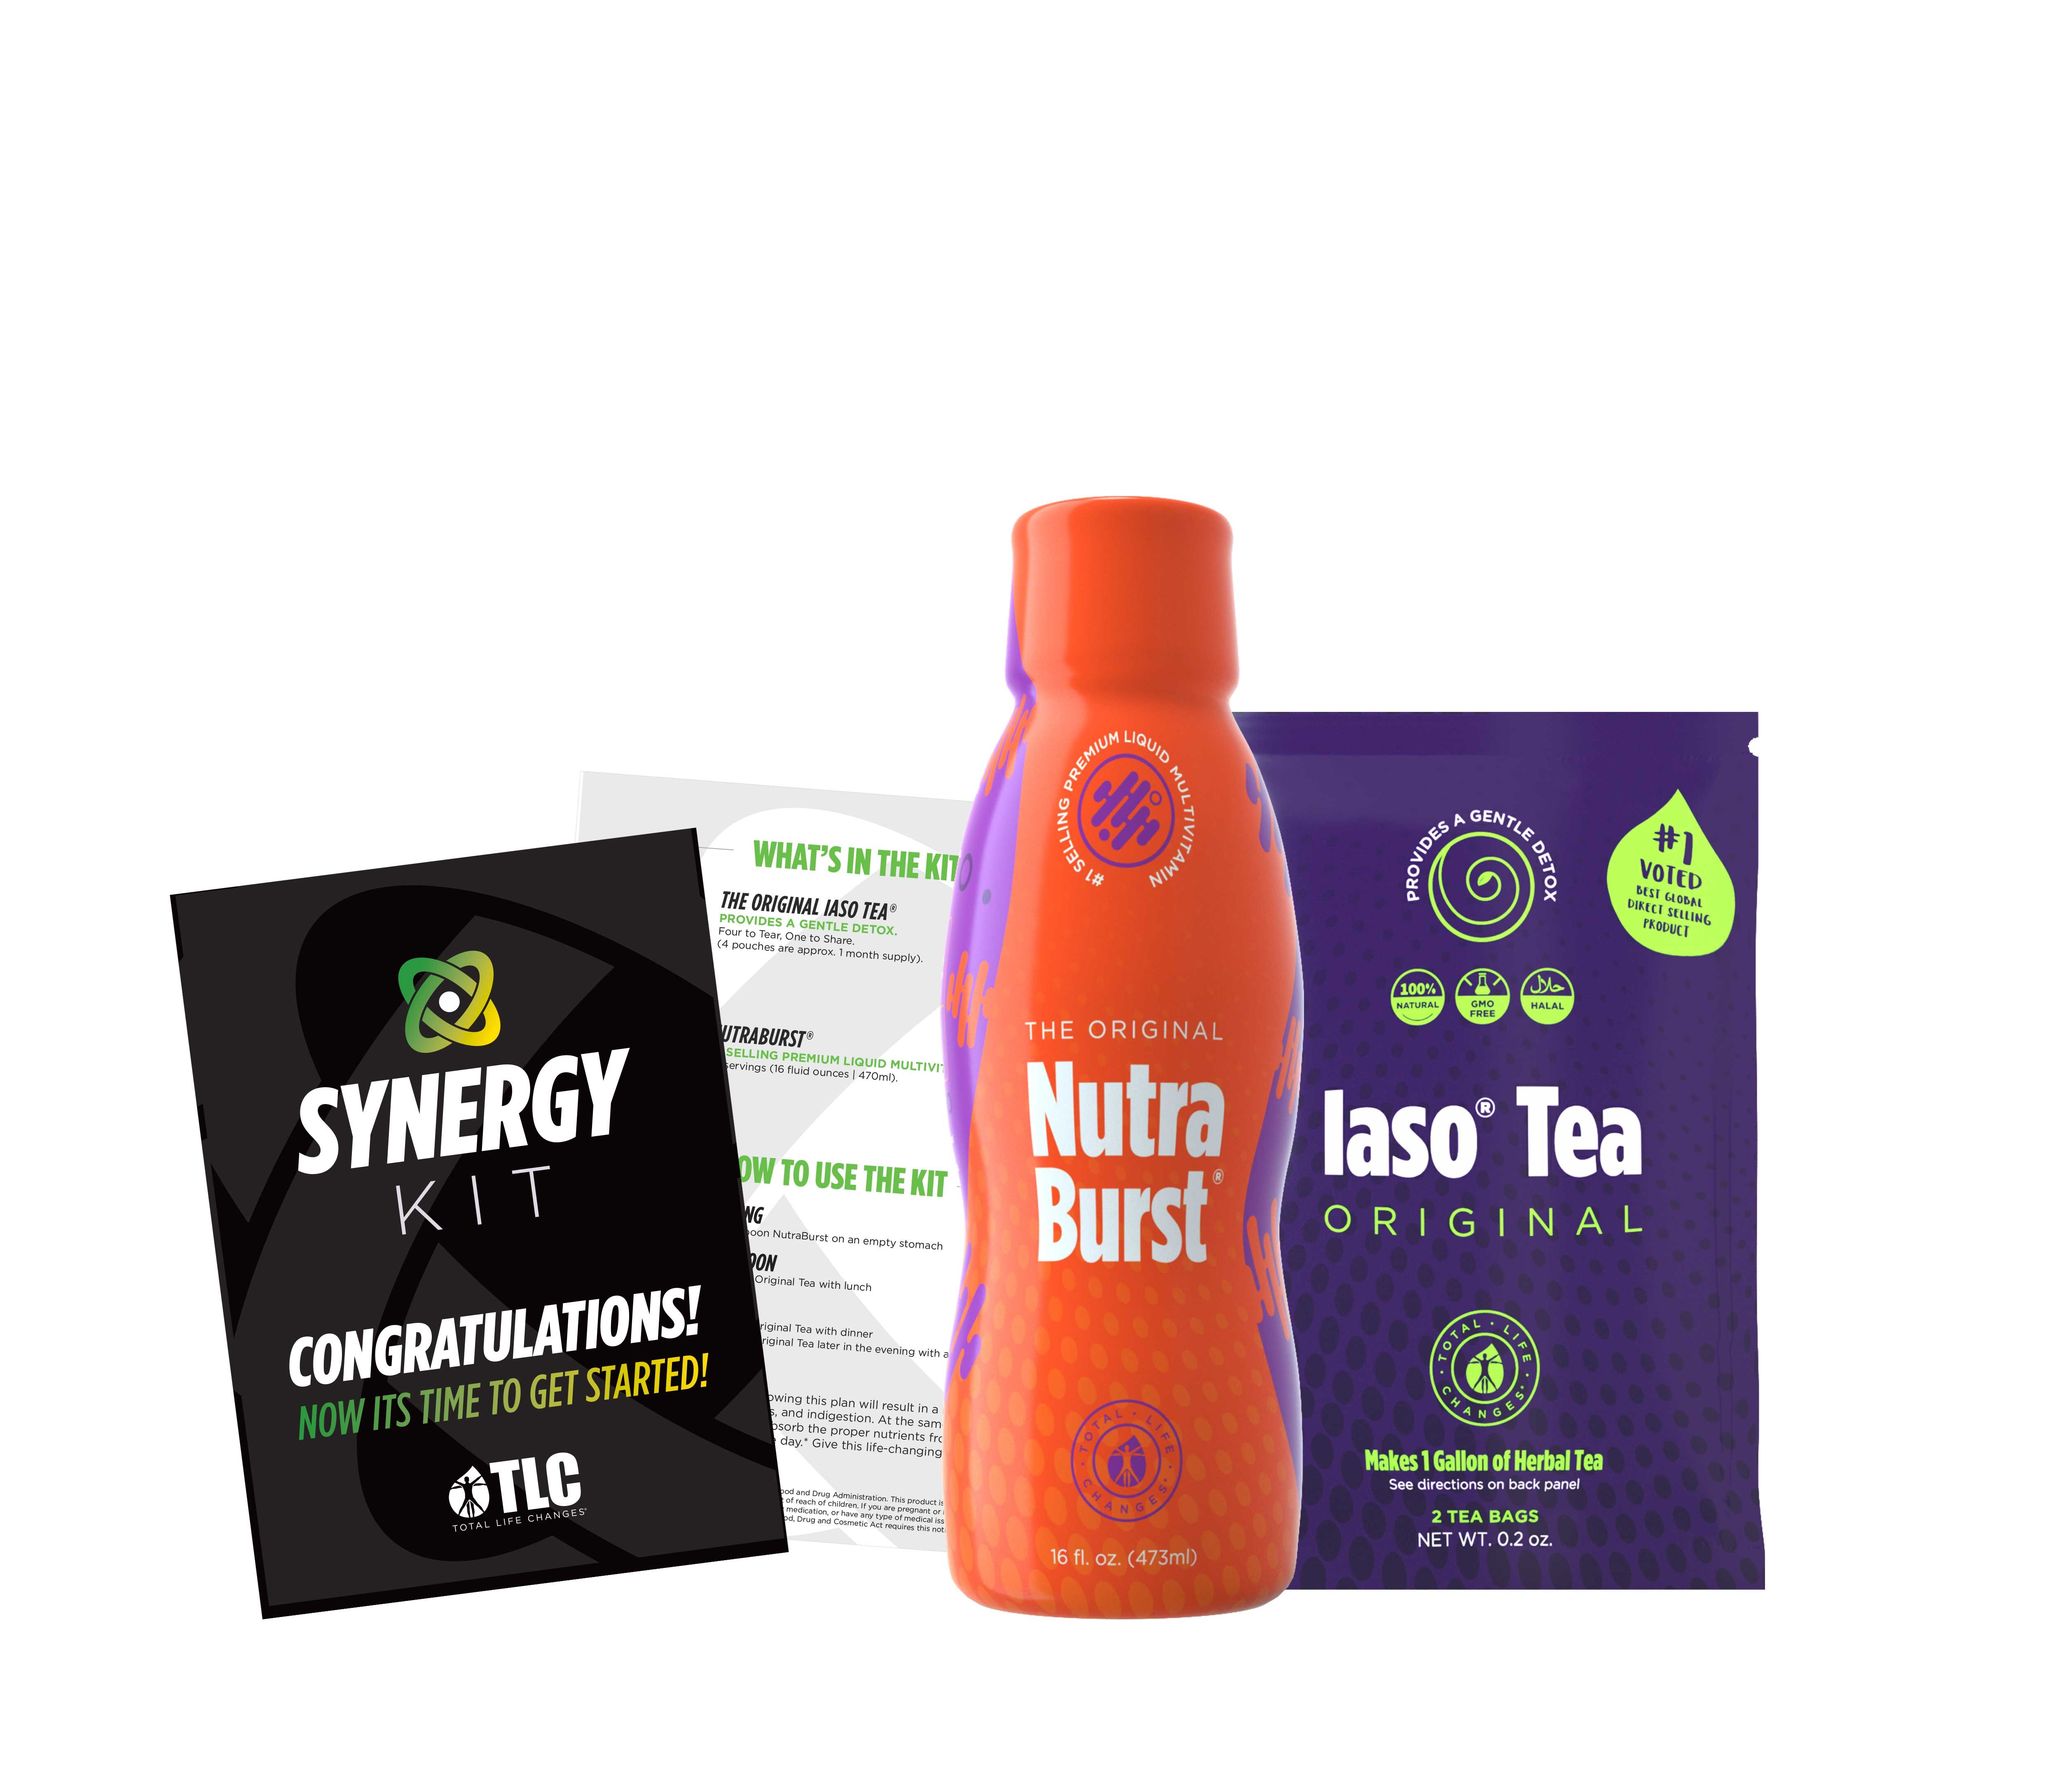 The Synergy Kit Contents Include 1 Month Supply Of Nutraburst 1 Month Supply Original Iaso Tea Plus One Free In 2020 Total Life Changes Iaso Tea Life Changes